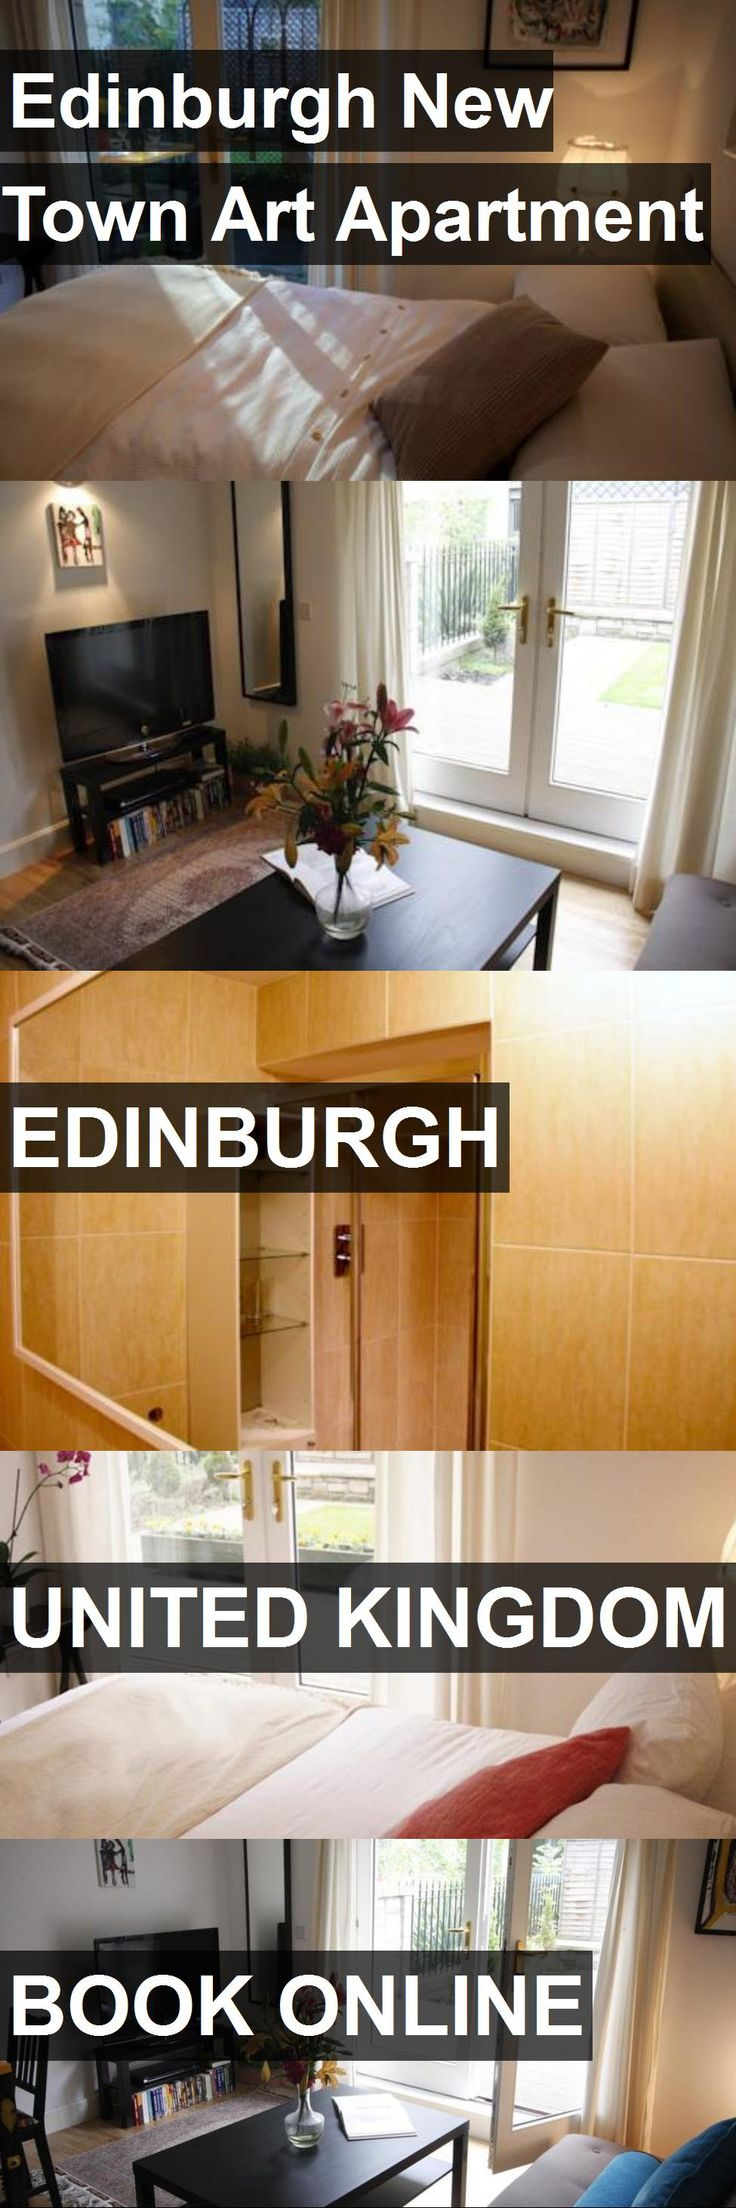 Edinburgh New Town Art Apartment in Edinburgh, United Kingdom. For more information, photos, reviews and best prices please follow the link. #UnitedKingdom #Edinburgh #travel #vacation #apartment